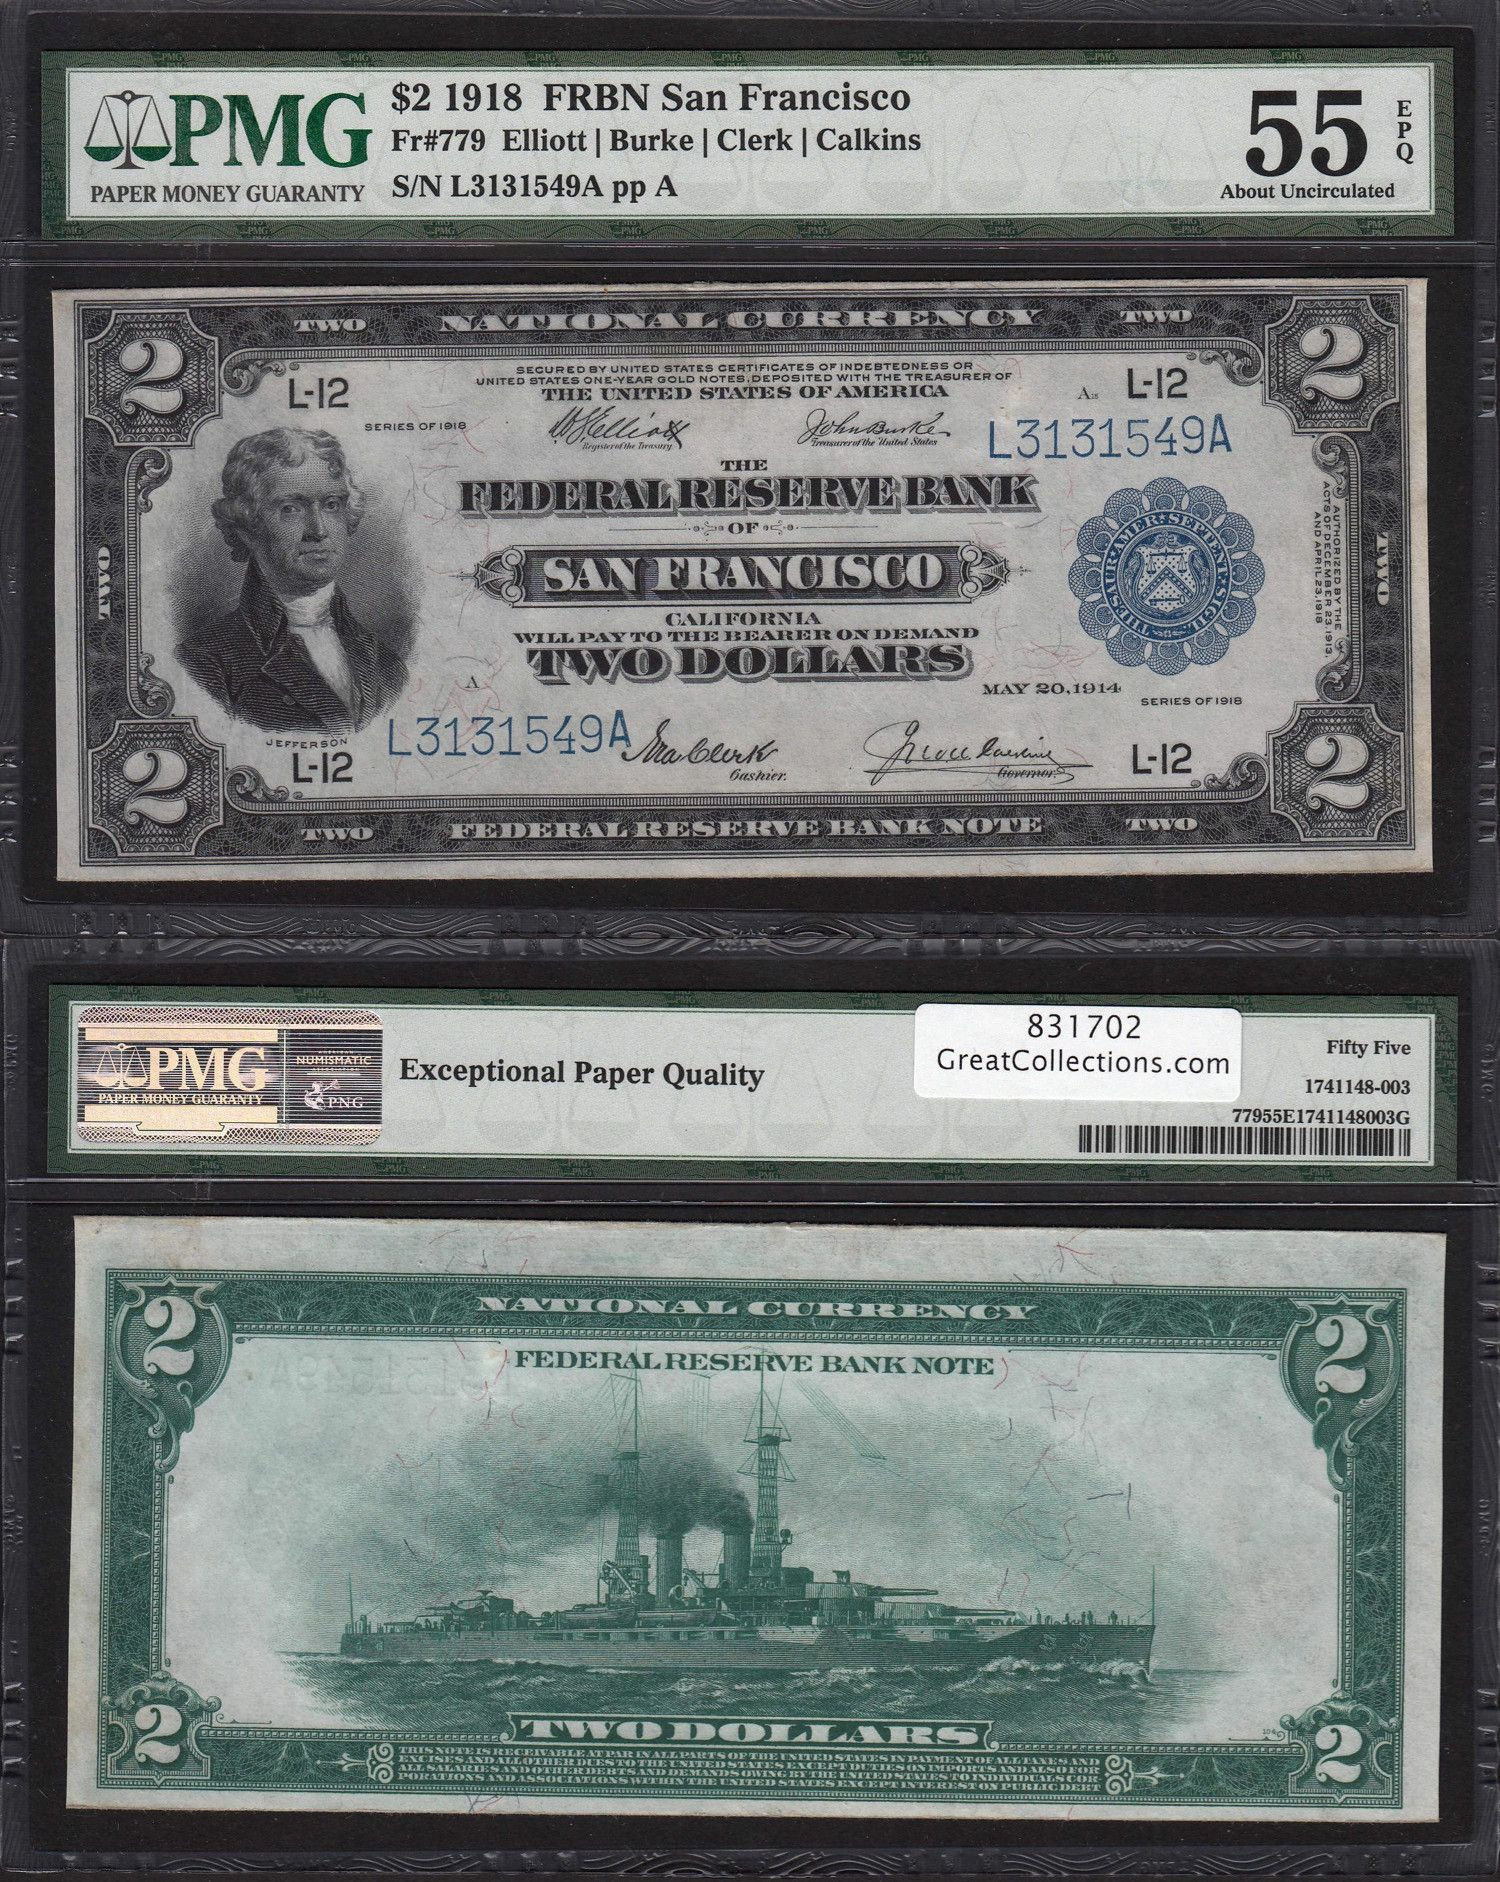 Pin By Scsproull On Numismatics In 2020 Bank Notes Federal Reserve Paper Money